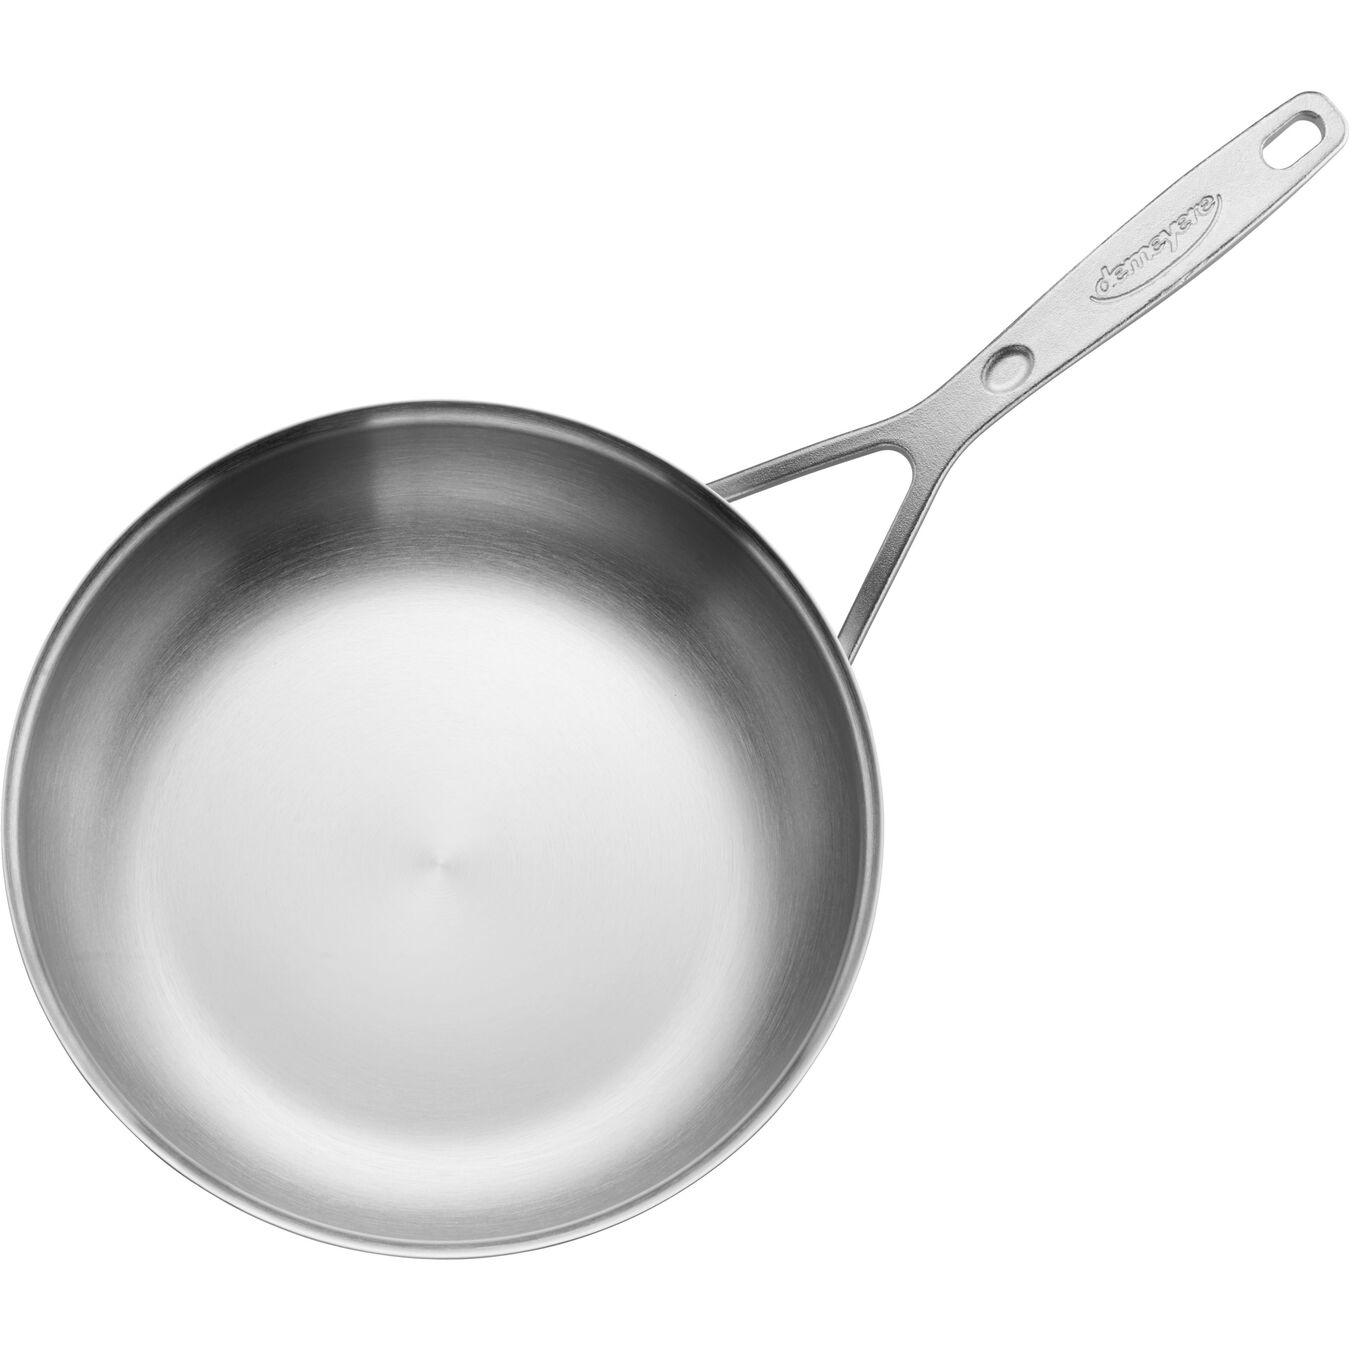 9.5-inch, 18/10 Stainless Steel, Non-stick, Frying pan,,large 2